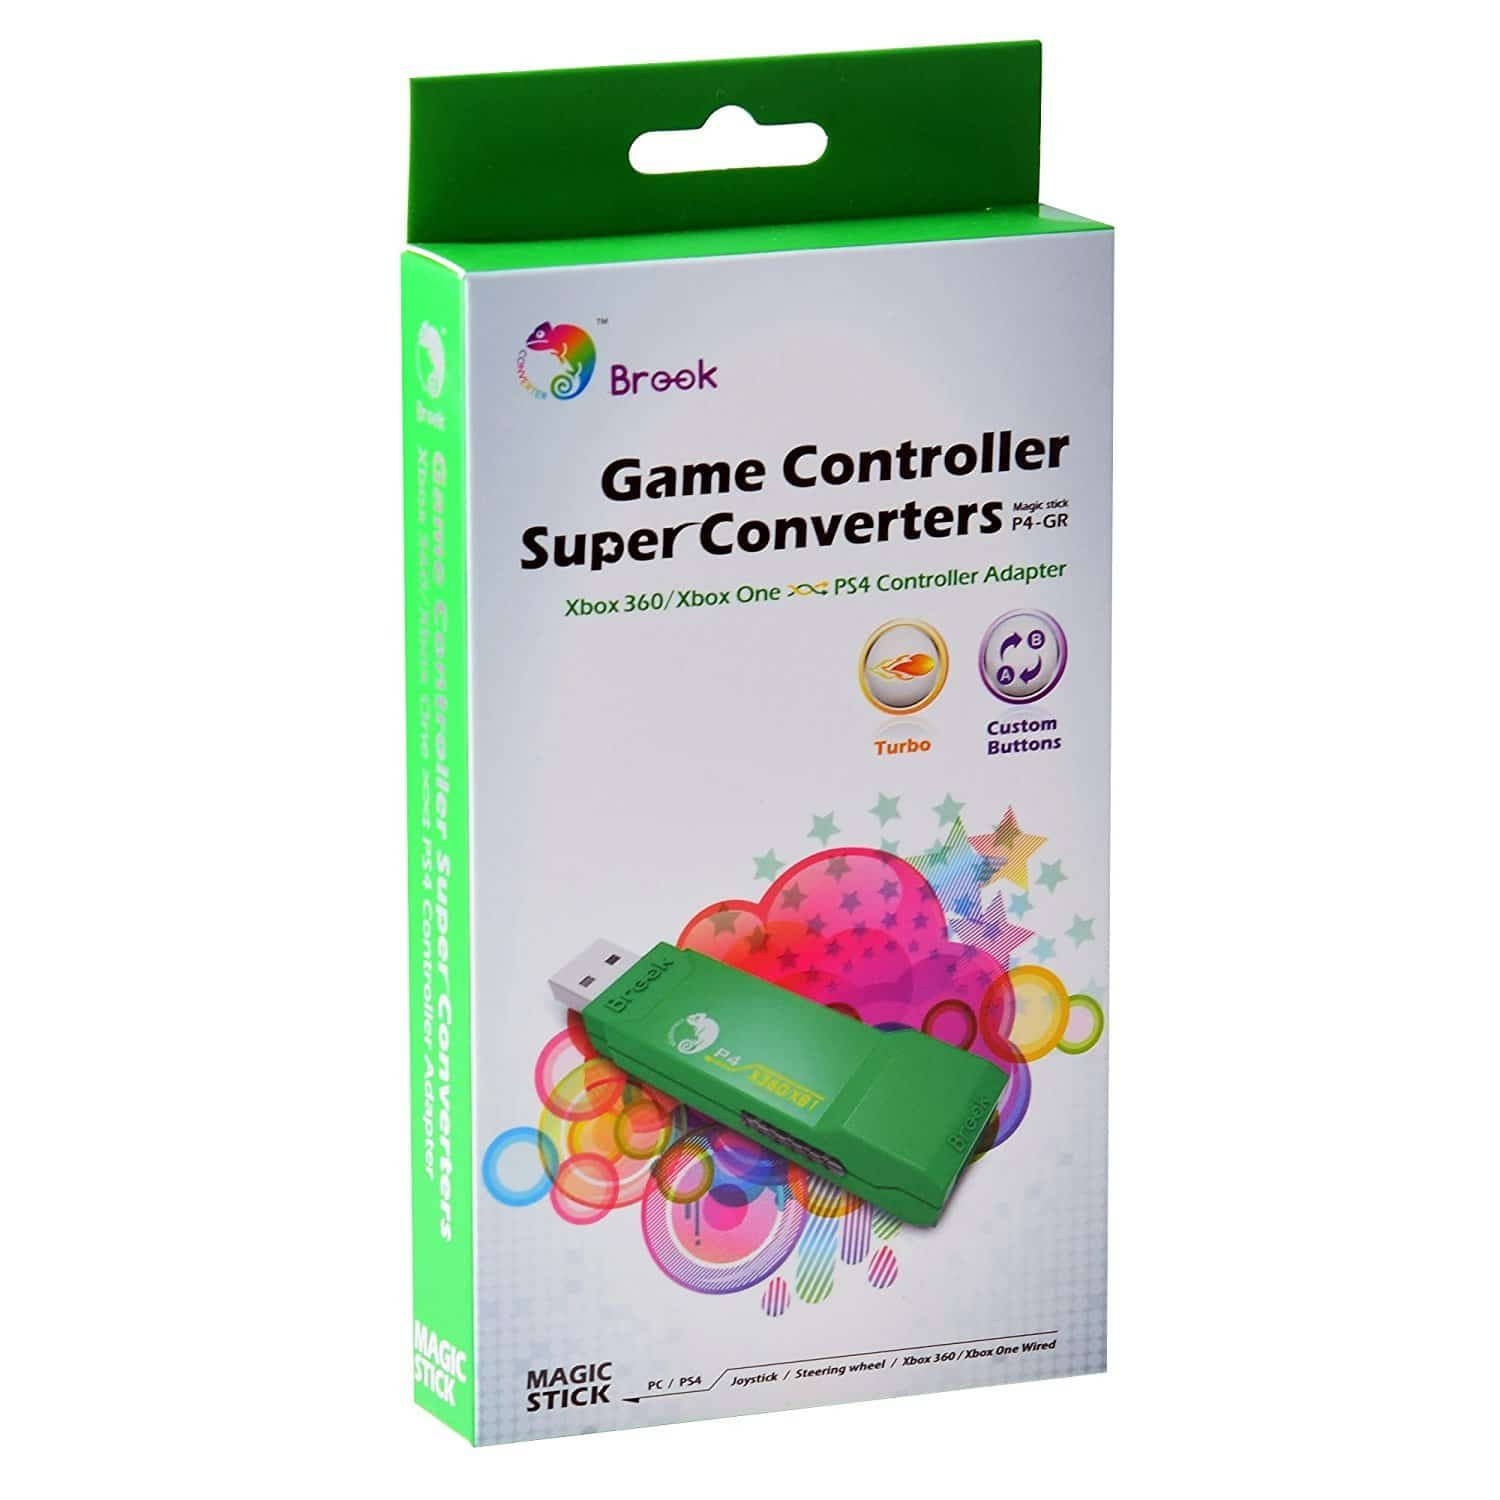 Brook XBOX 360 / ONE to PS4 Super Converter GREEN